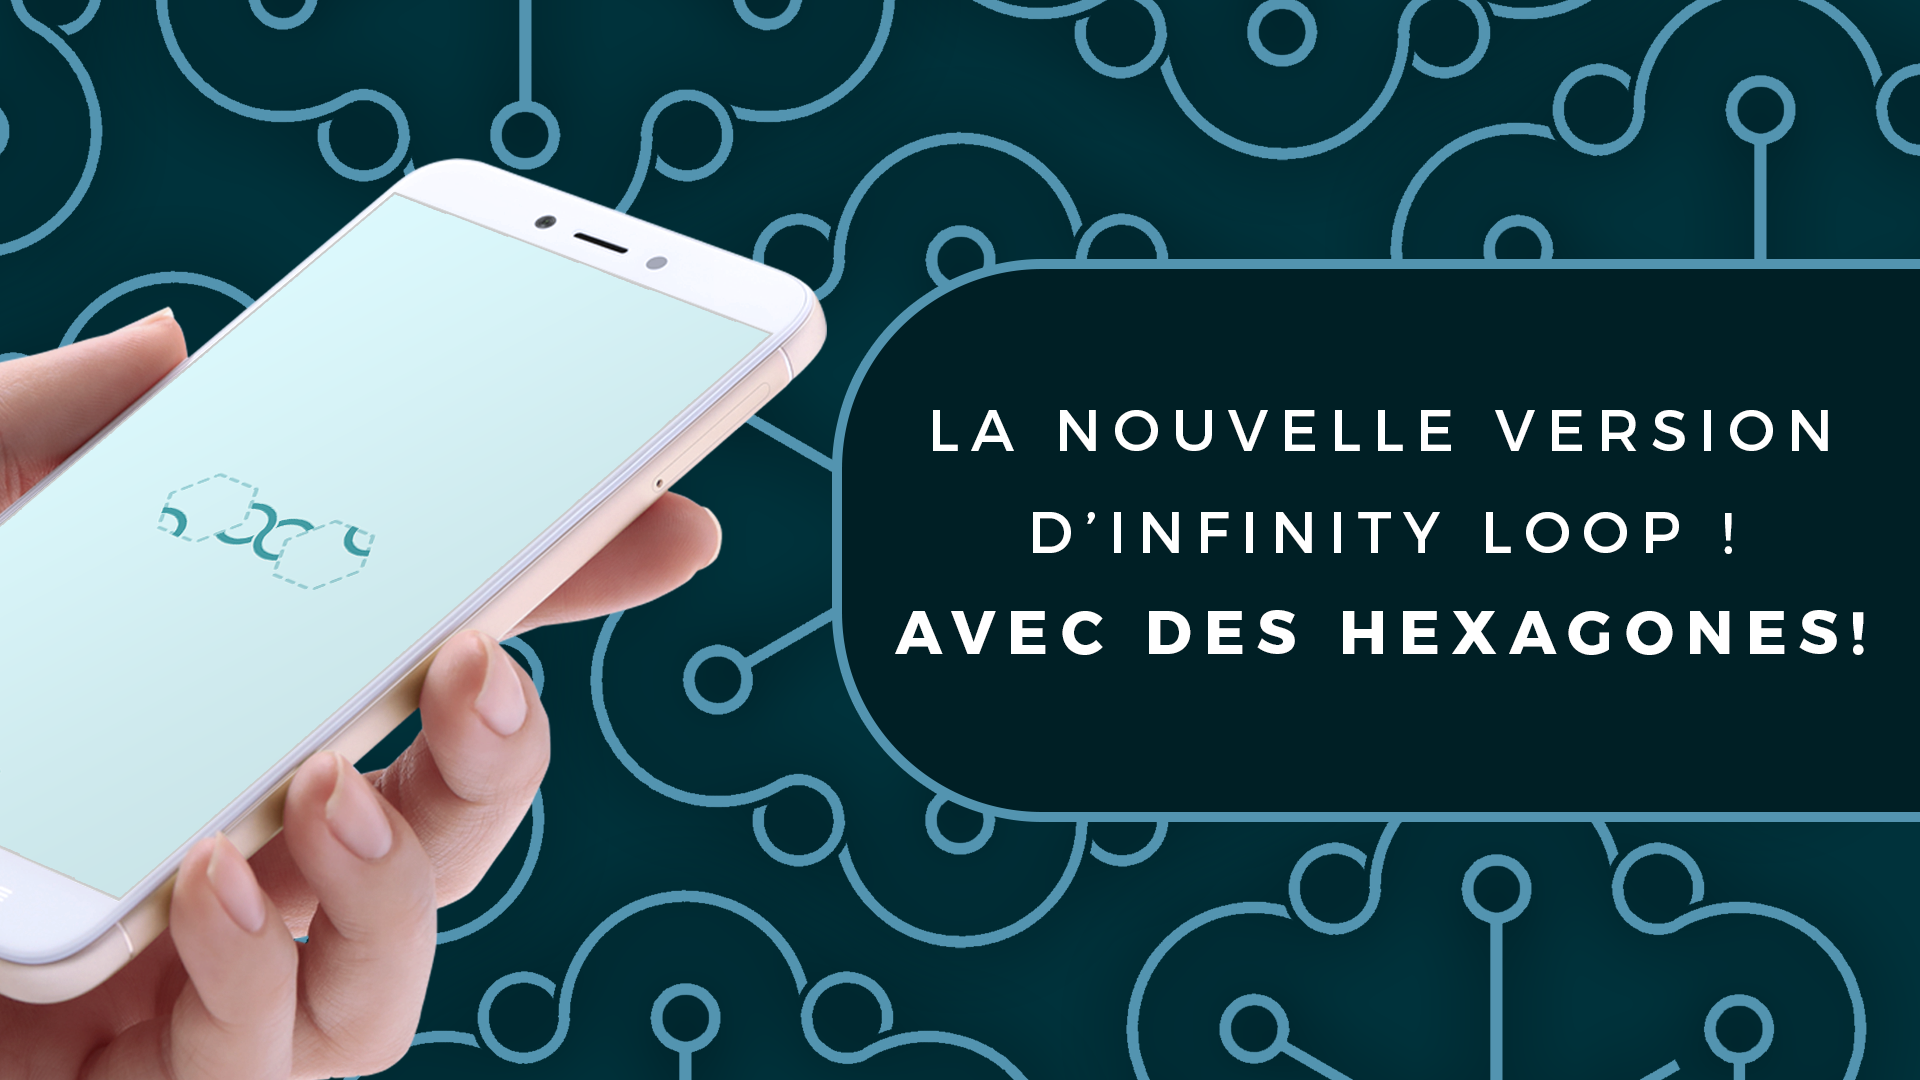 Infinity Loop Hex Amazonfr Appstore Pour Android